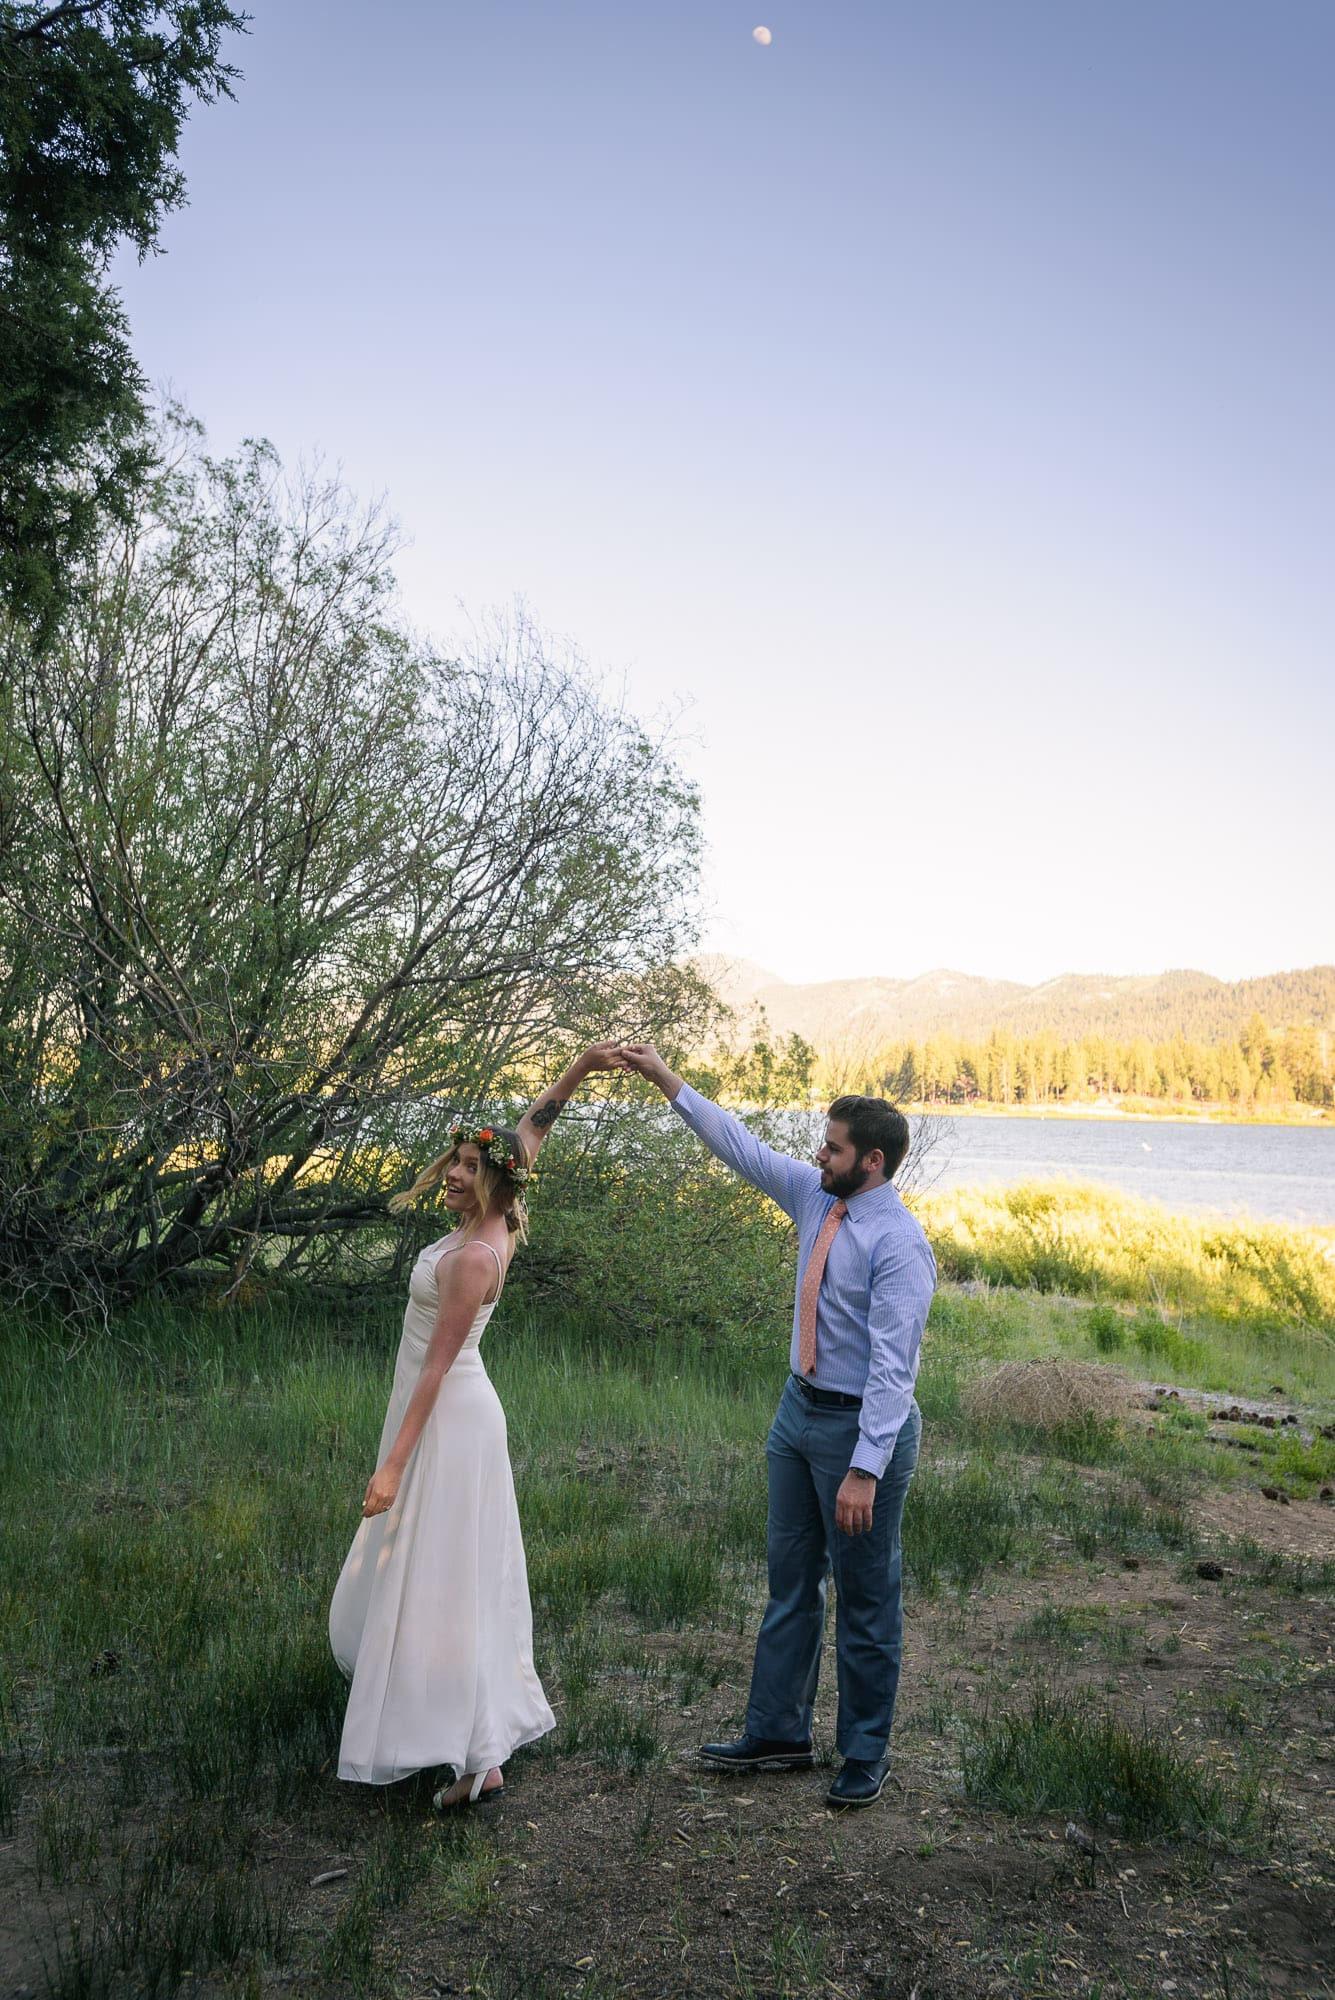 009_Alan_and_Heidi_Kensey_Josh_Big_Bear_Elopement